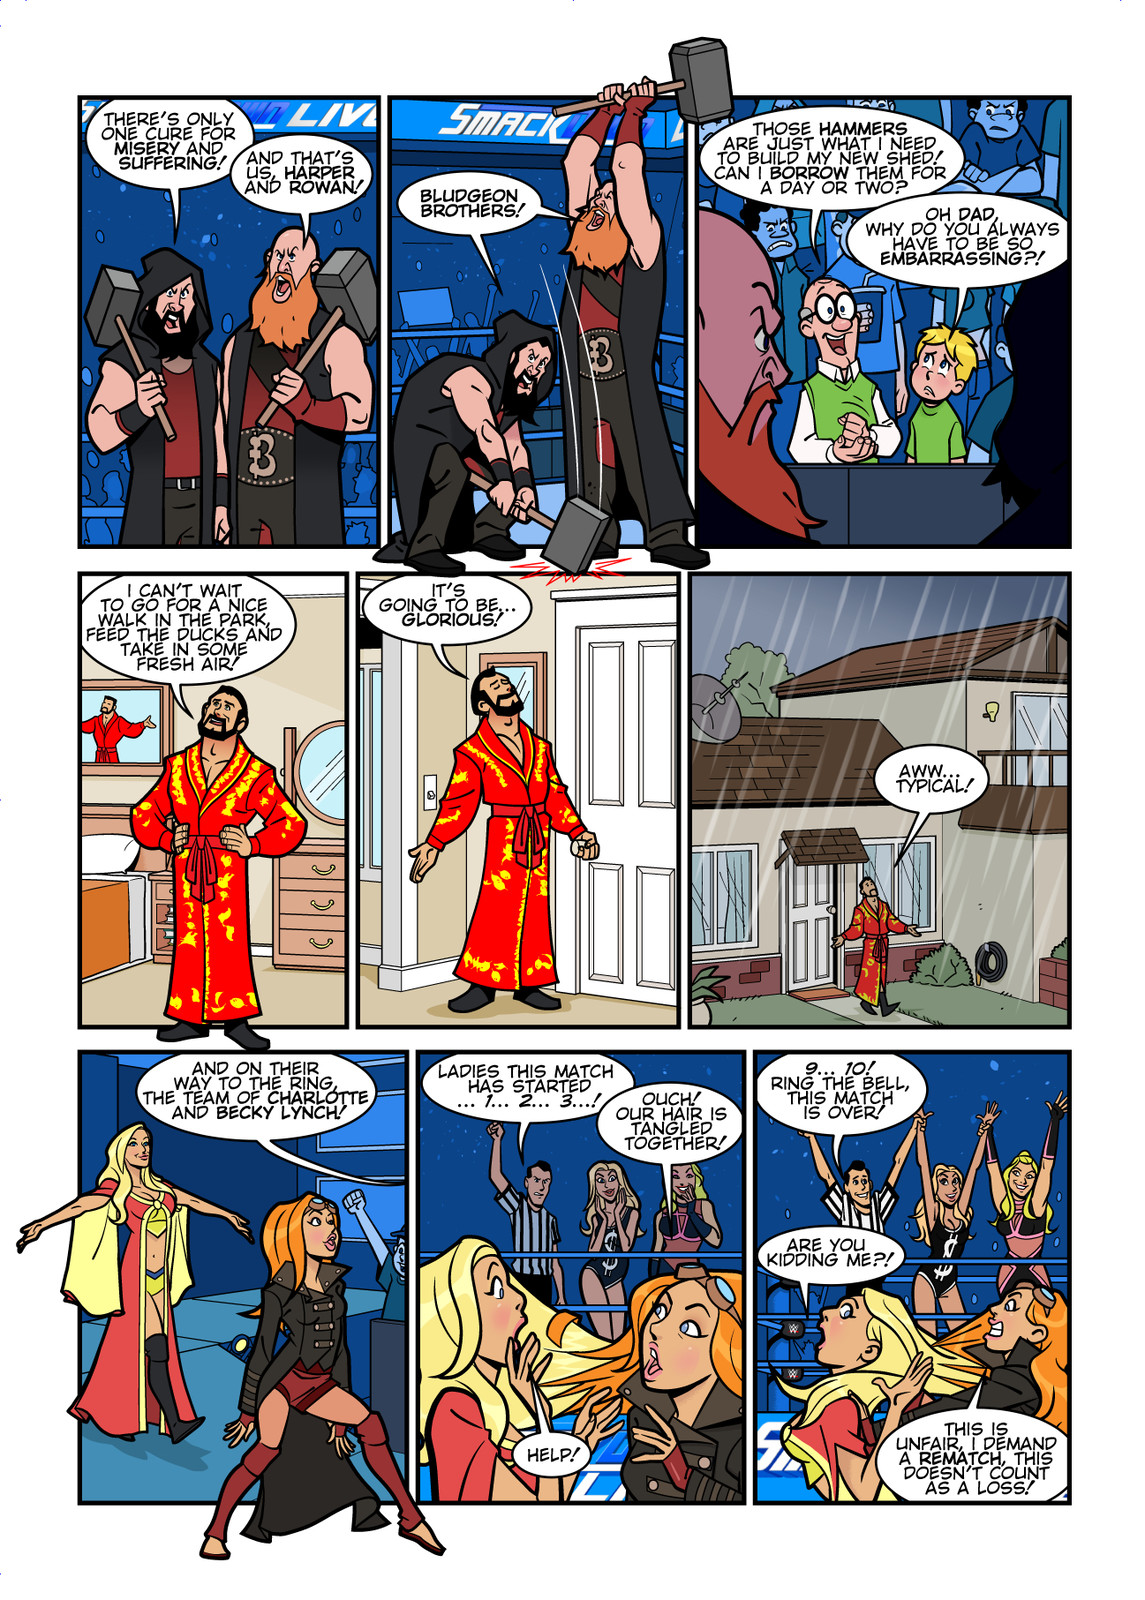 WWE Smackdown Live comic strips for WWE Kids Magazine #132